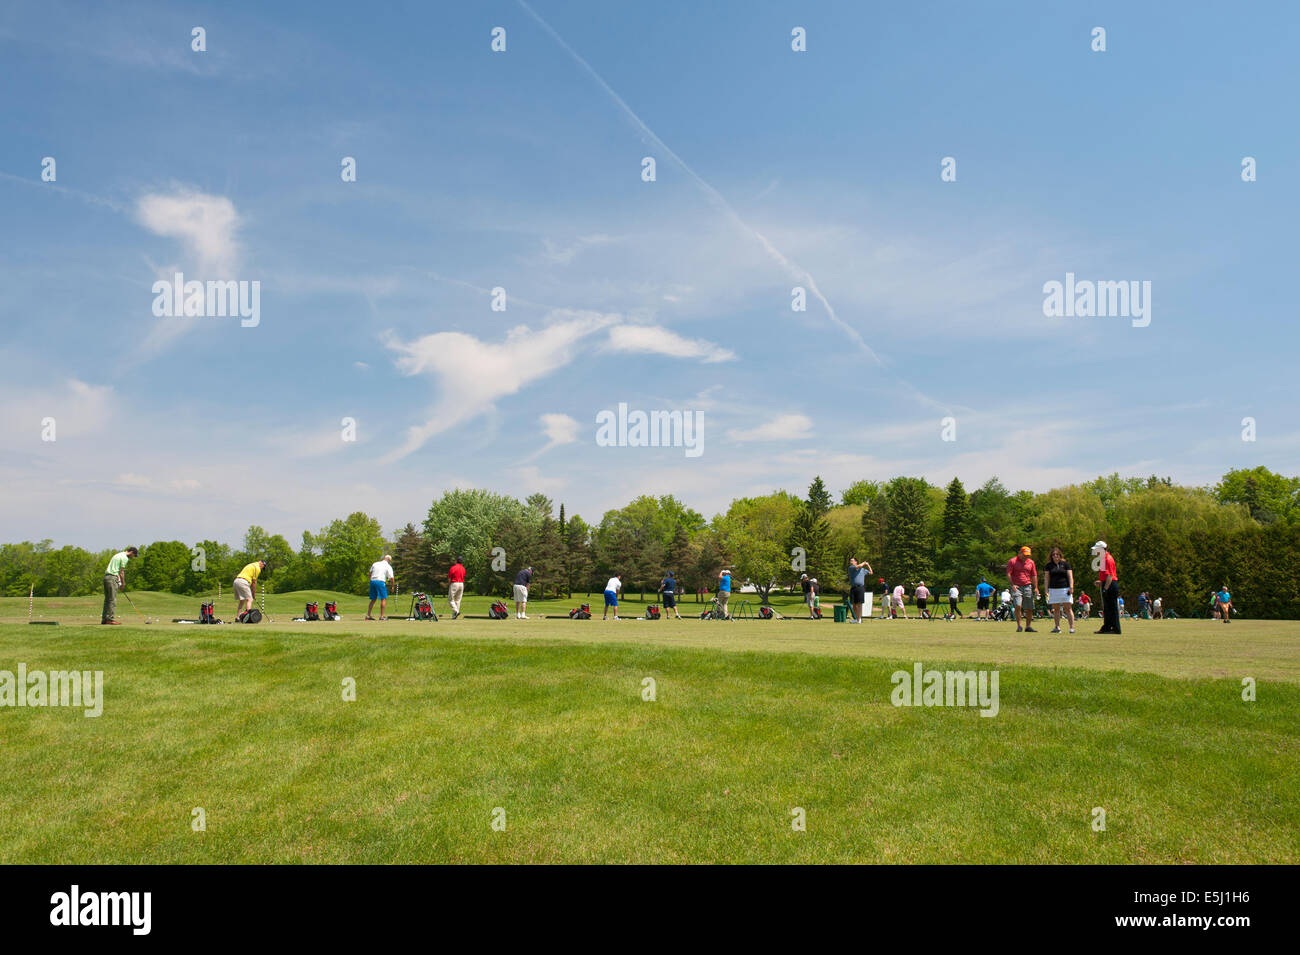 Golfers practicing their swing on a driving range. - Stock Image